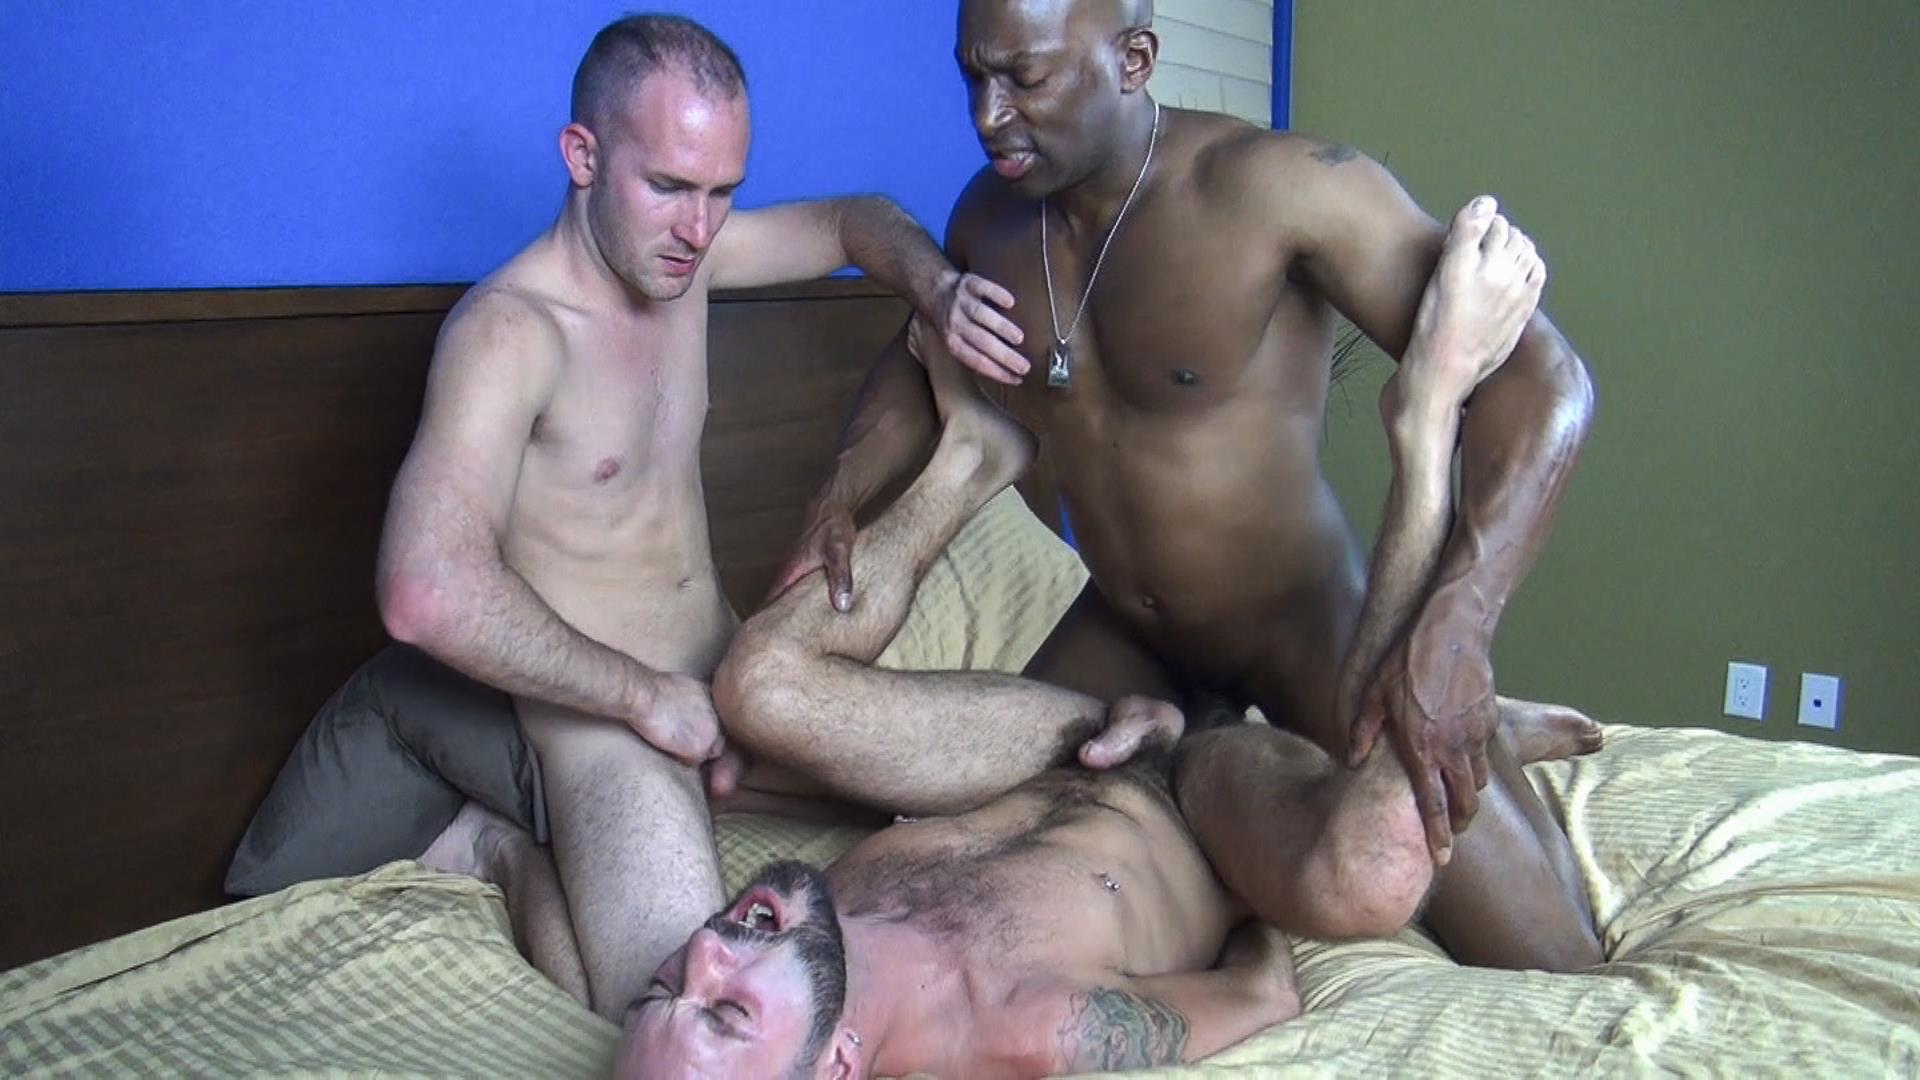 Raw-Fuck-Club-Ethan-Palmer-and-Champ-Robinson-and-Trit-Tyler-Bareback-Interrical-Amateur-Gay-Porn-04 Champ Robinson Shares His Big Black Dick With 2 White Guys